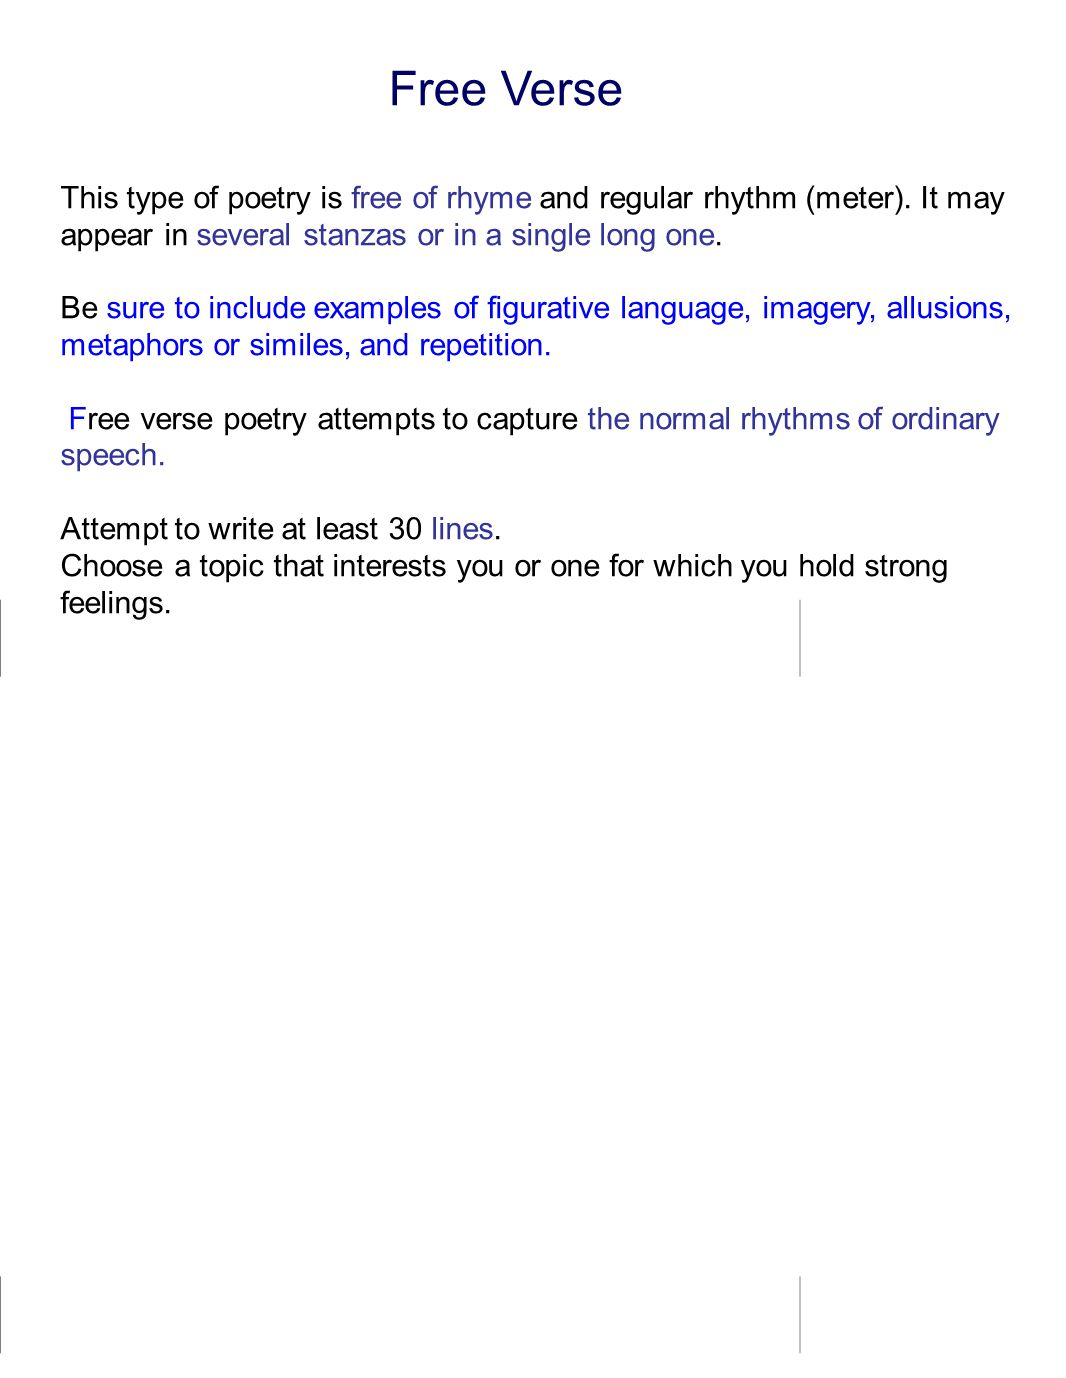 Free Verse This type of poetry is free of rhyme and regular rhythm (meter). It may appear in several stanzas or in a single long one.